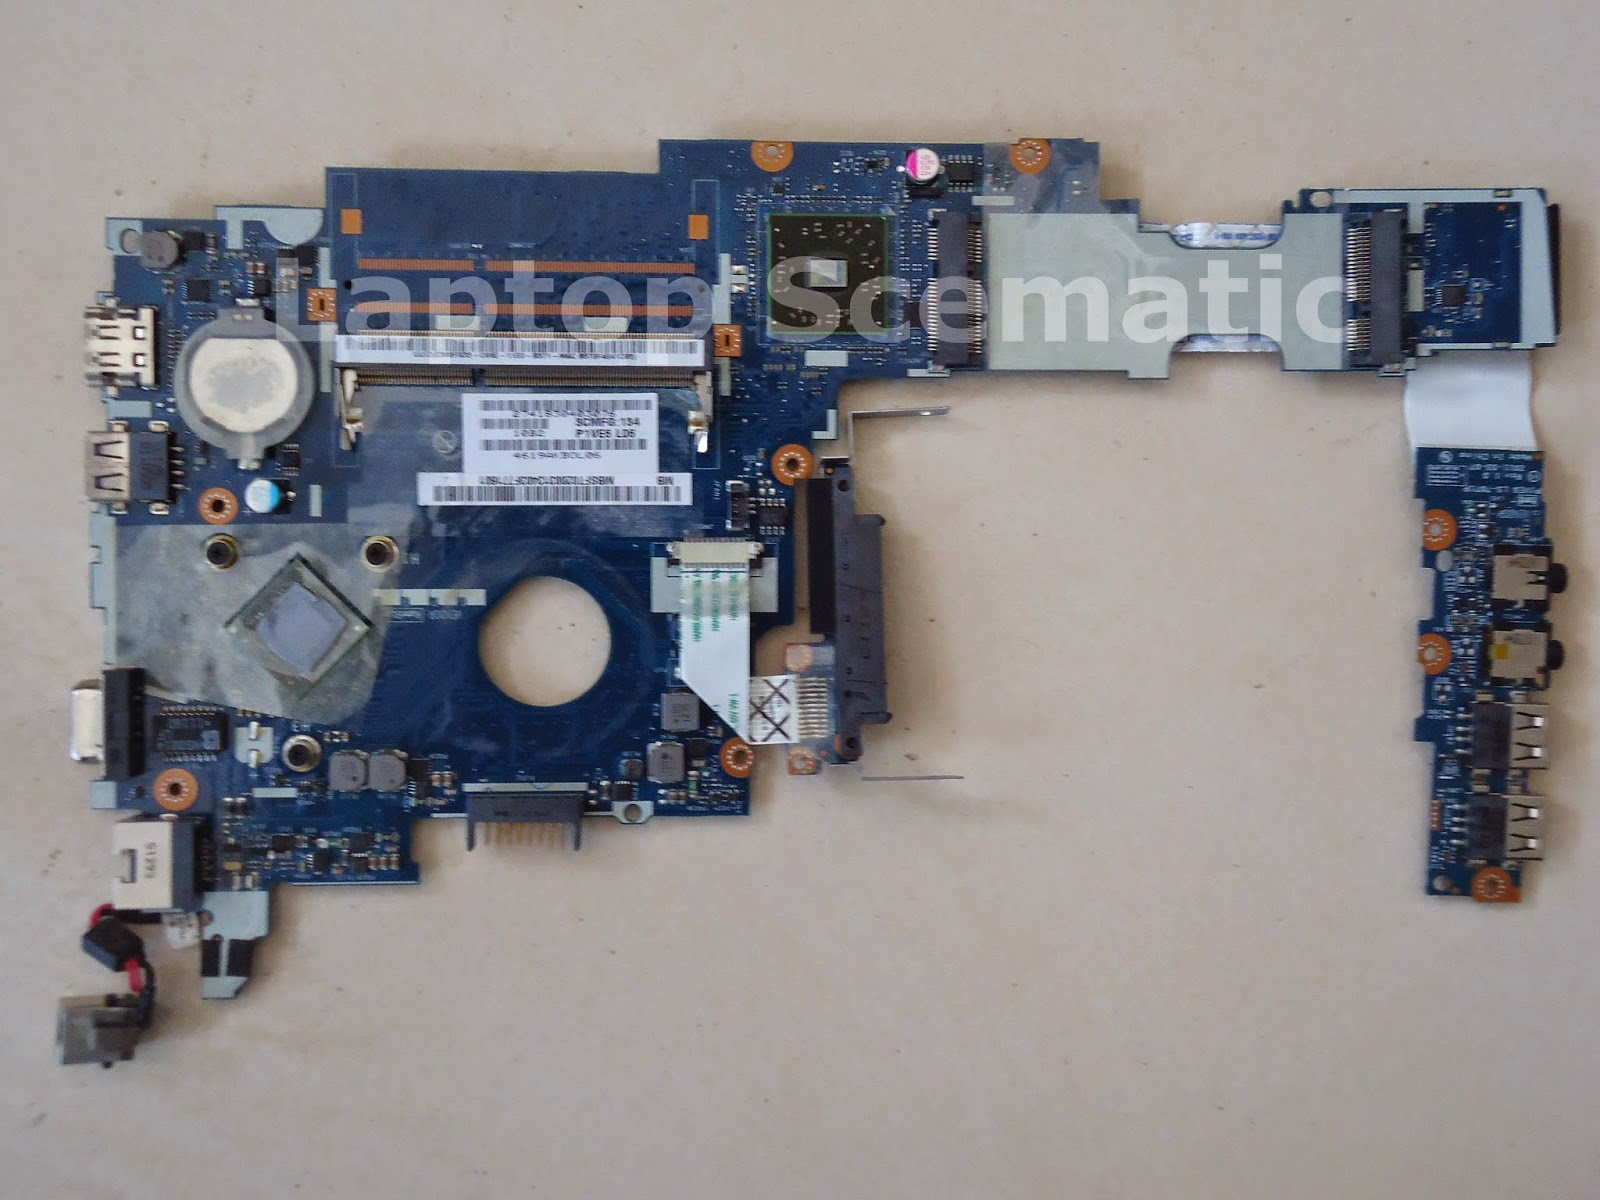 Pico Btx Motherboard Diagram Nursing Process Steps For Acer Aspire One 722 Laptop Bios